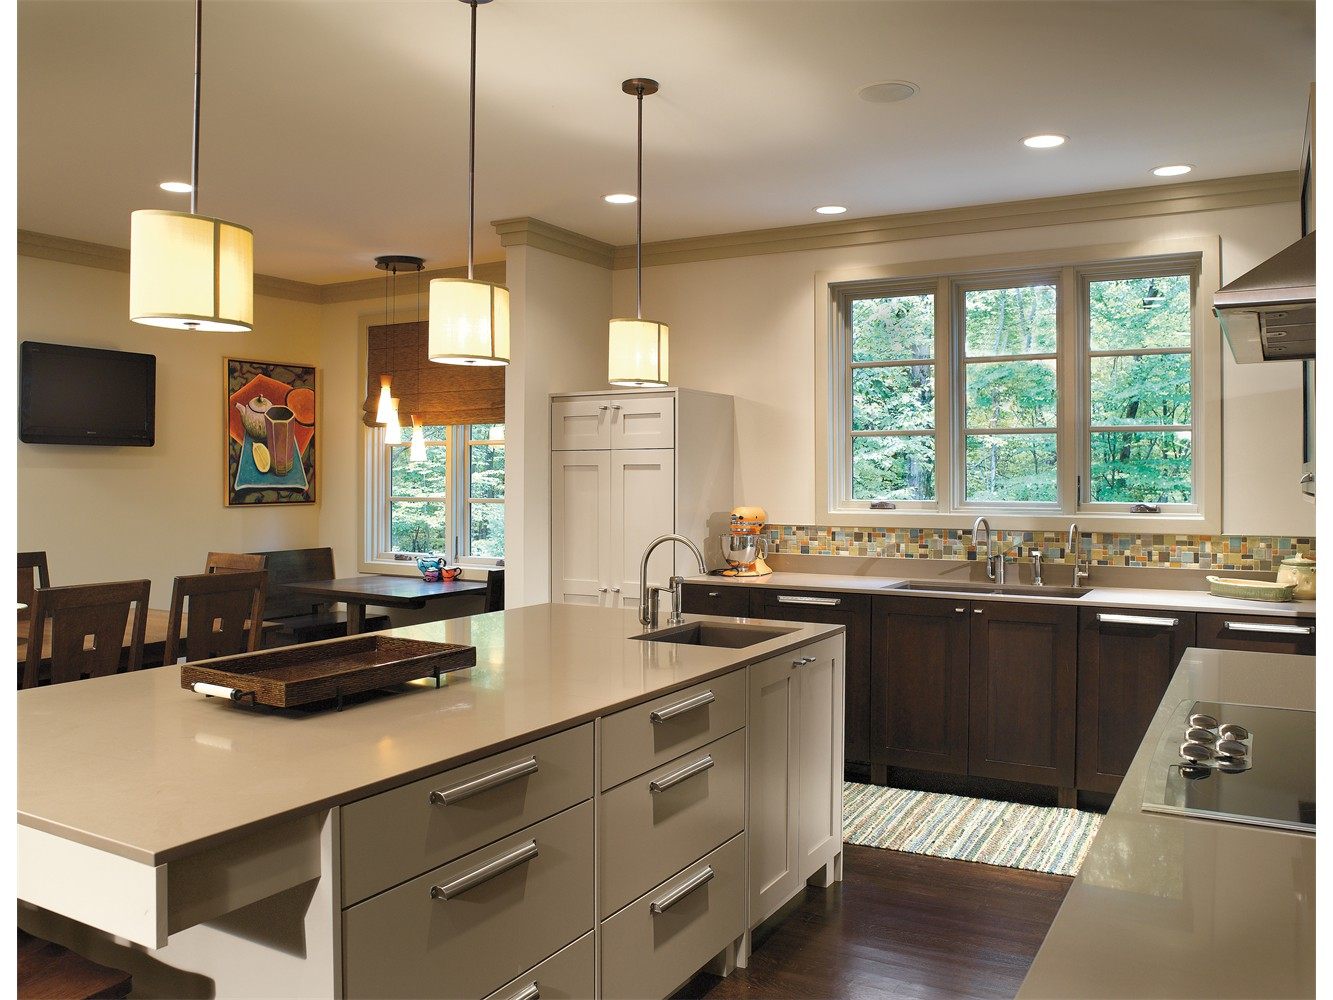 Mill Creek Offers Professional In House Custom Cabinet Design With 2 Full Time Designers On Staff